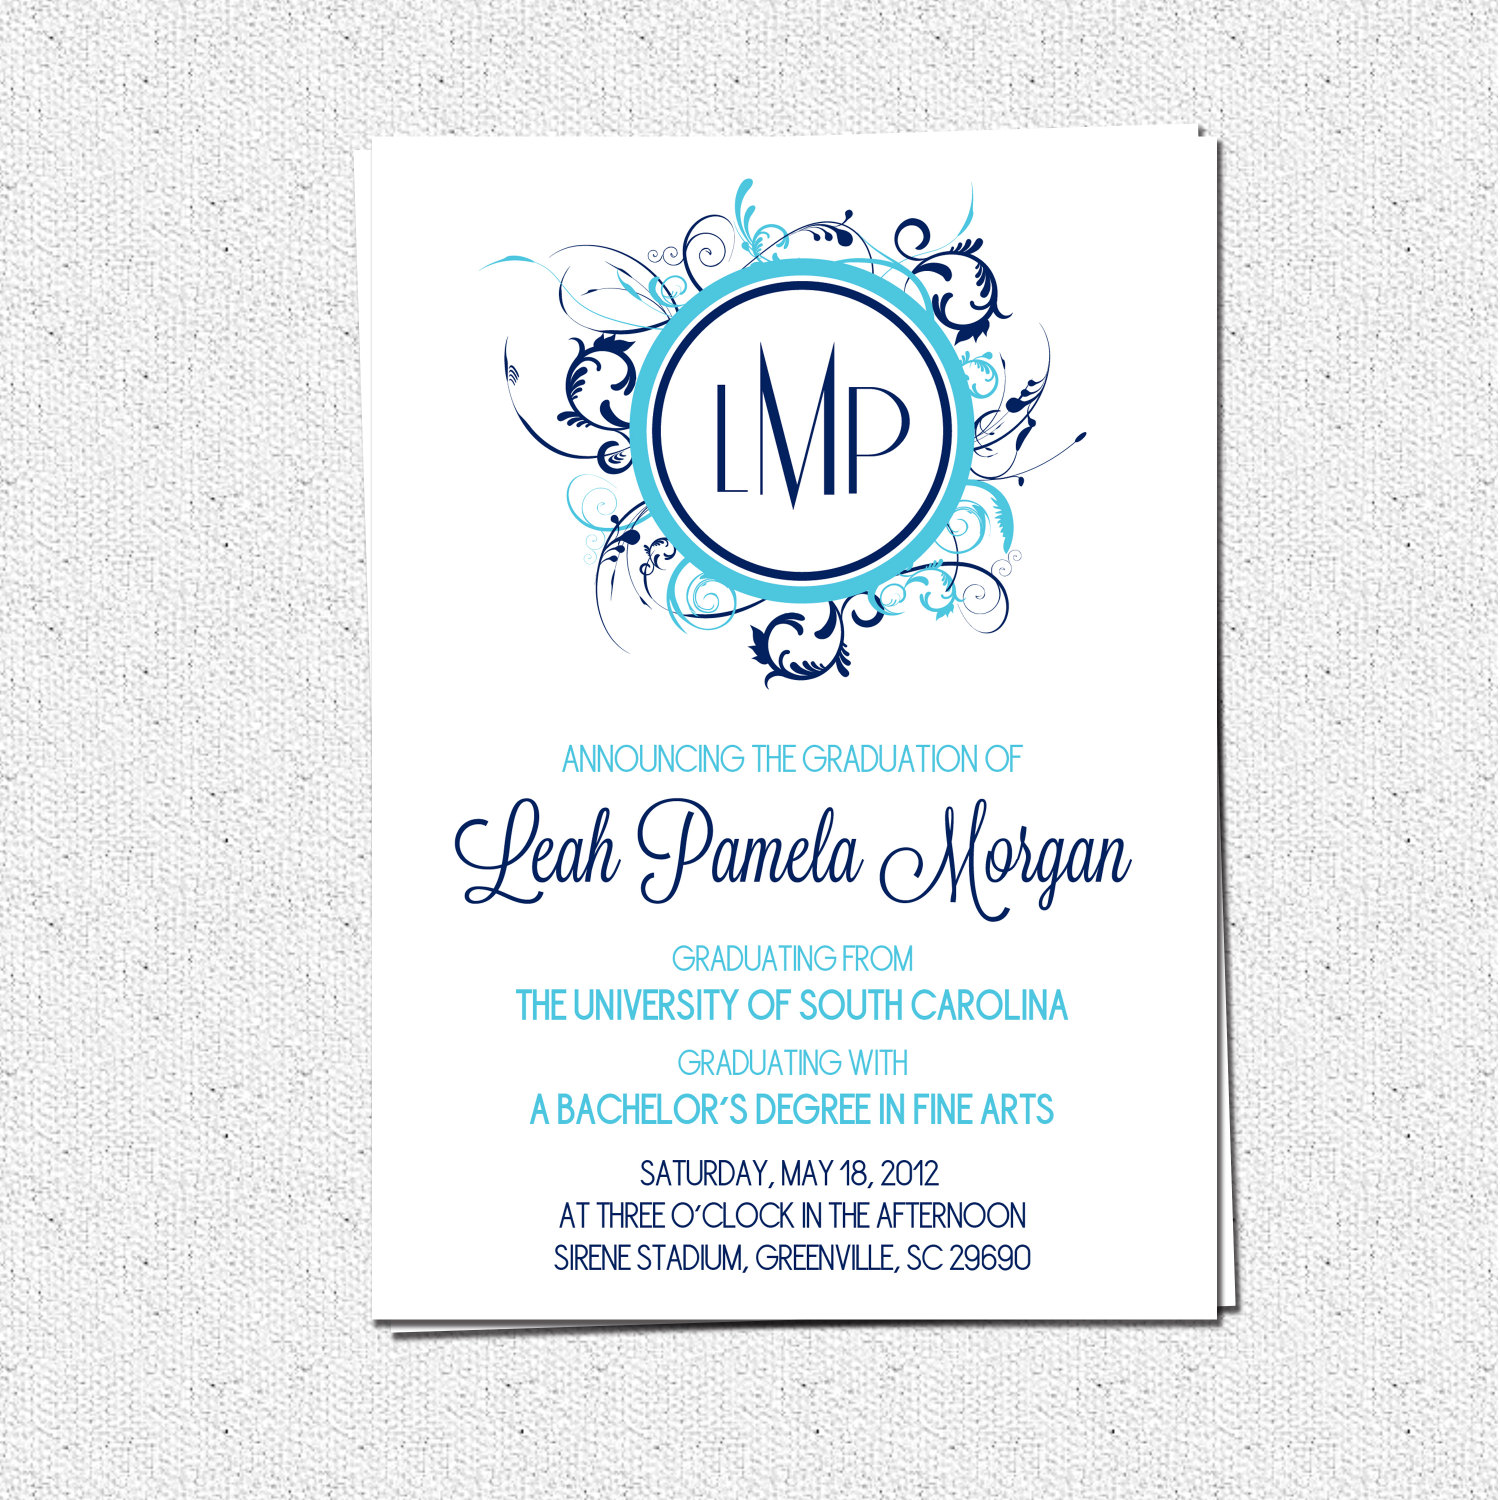 Graduation announcement invitations modern floral monogram girl graduation announcement invitations modern floral monogram girl custom personalized pick your filmwisefo